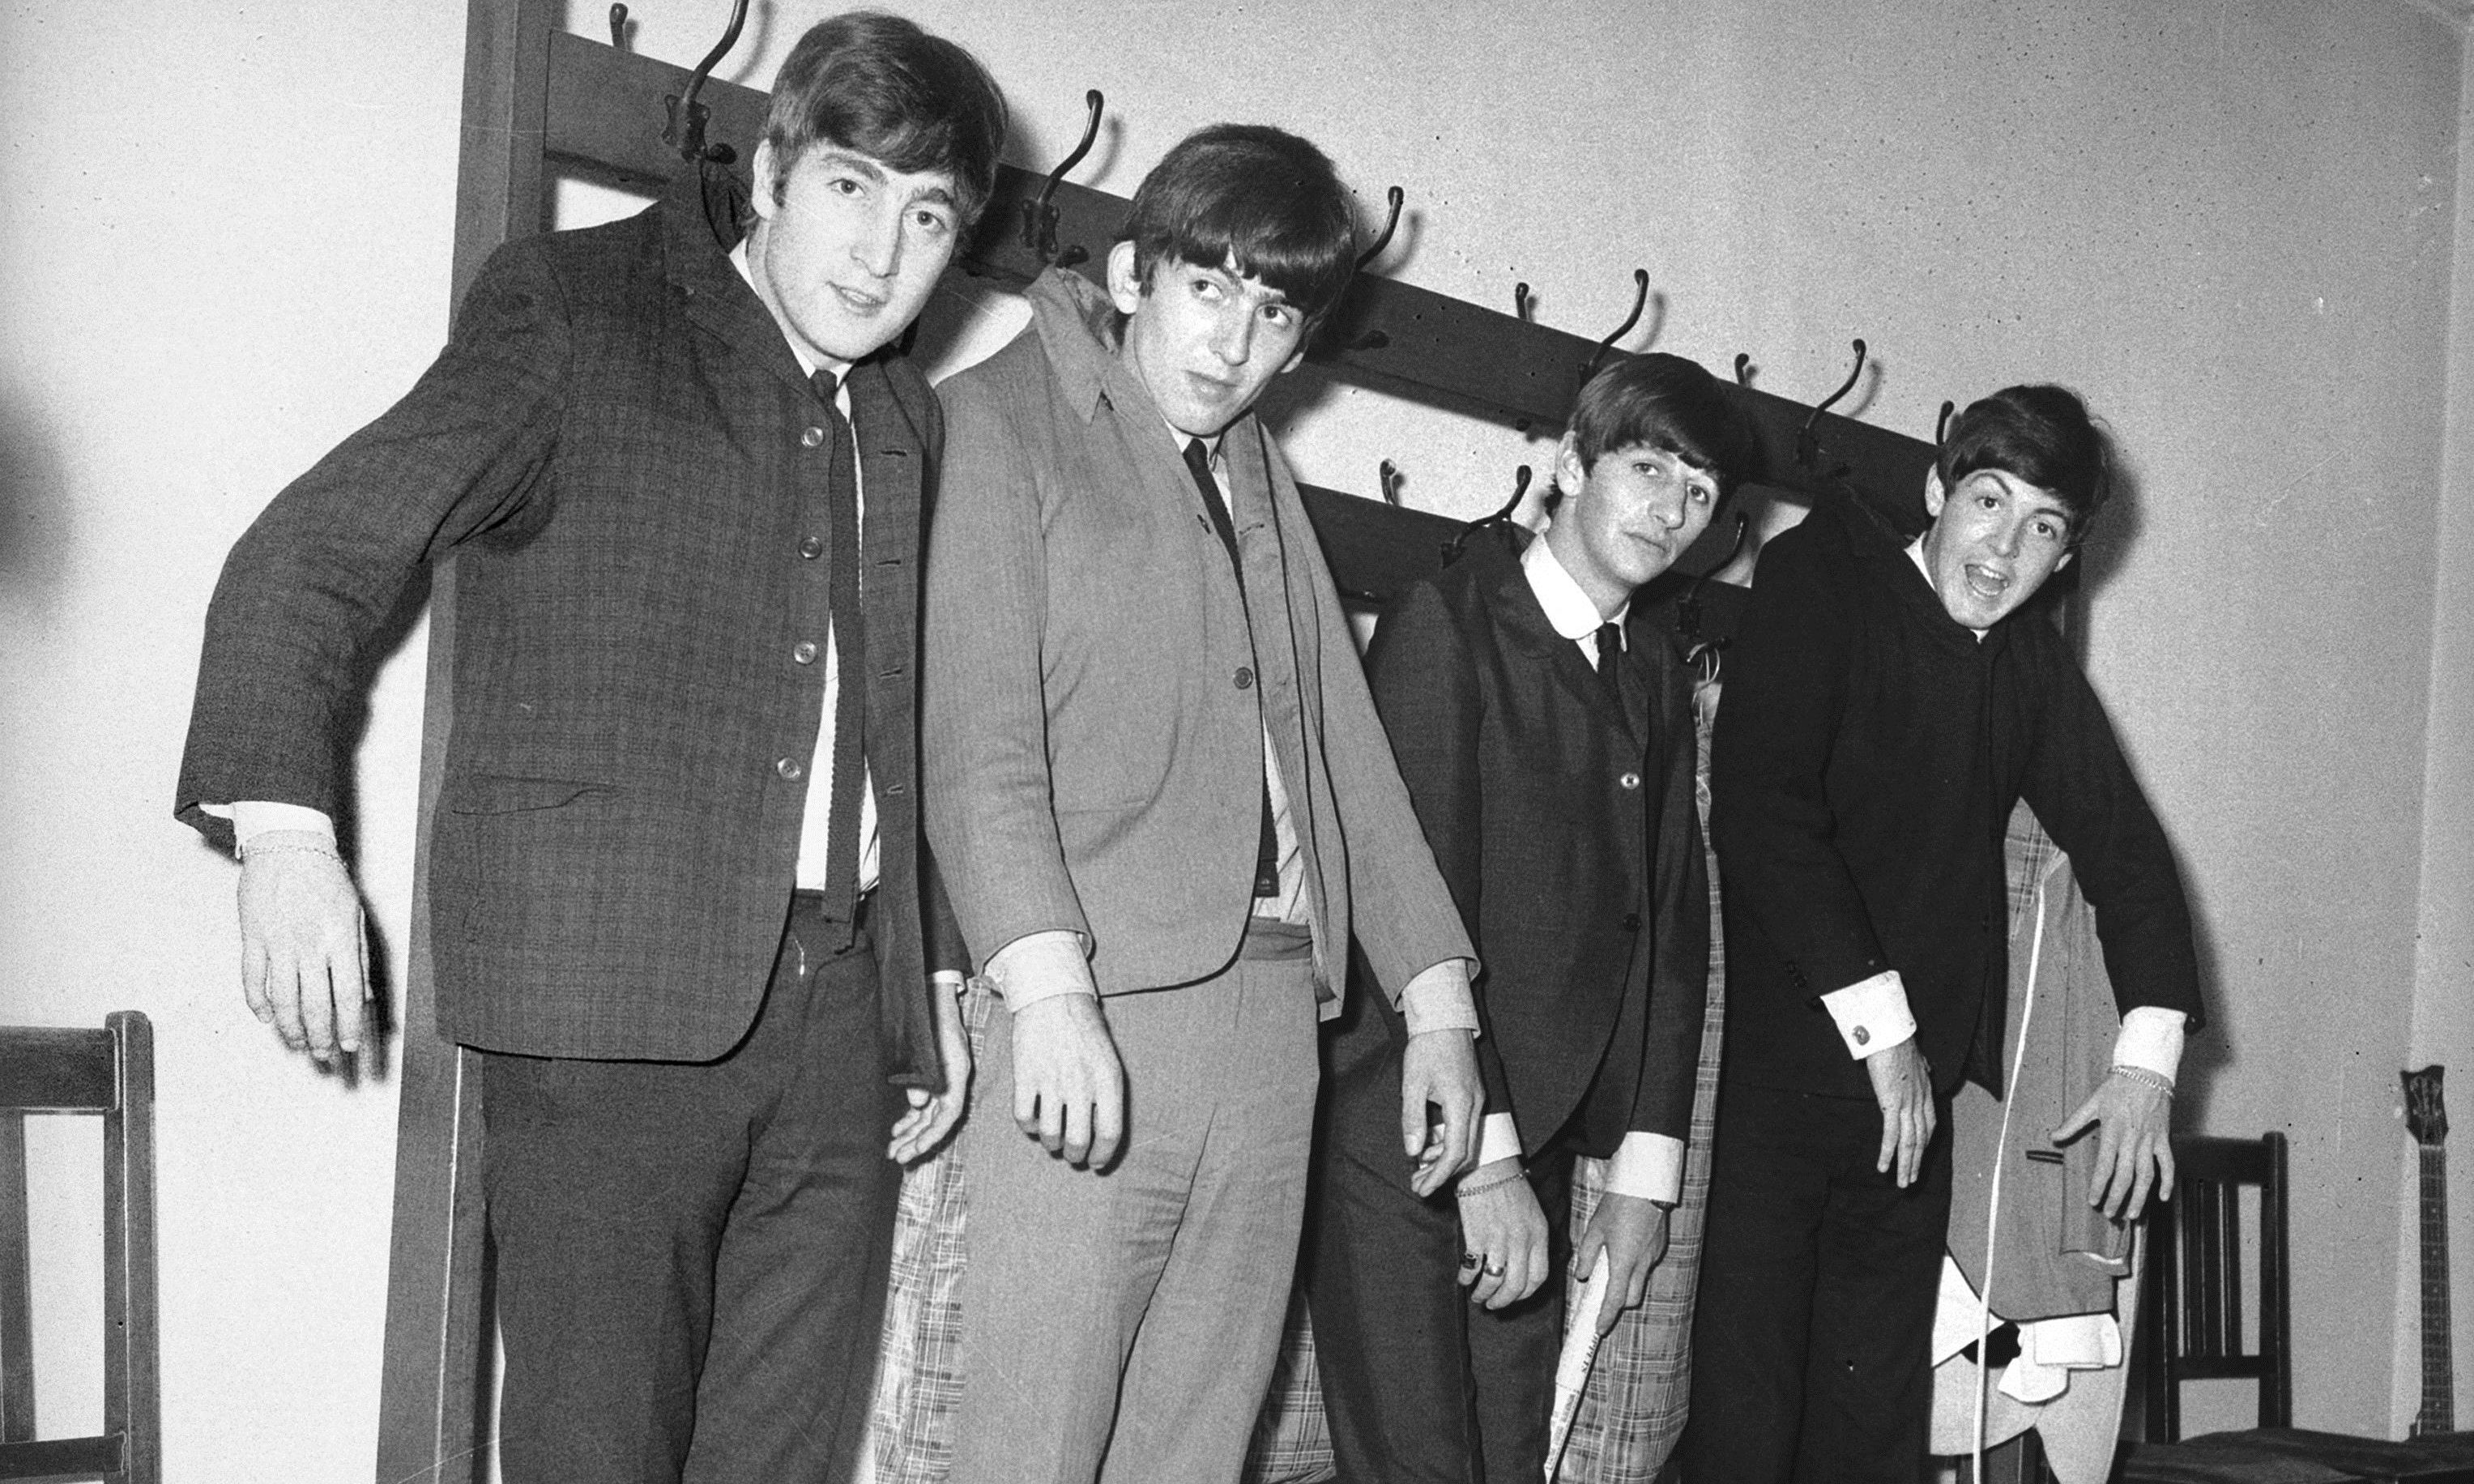 The Beatles at Caird Hall in 1963